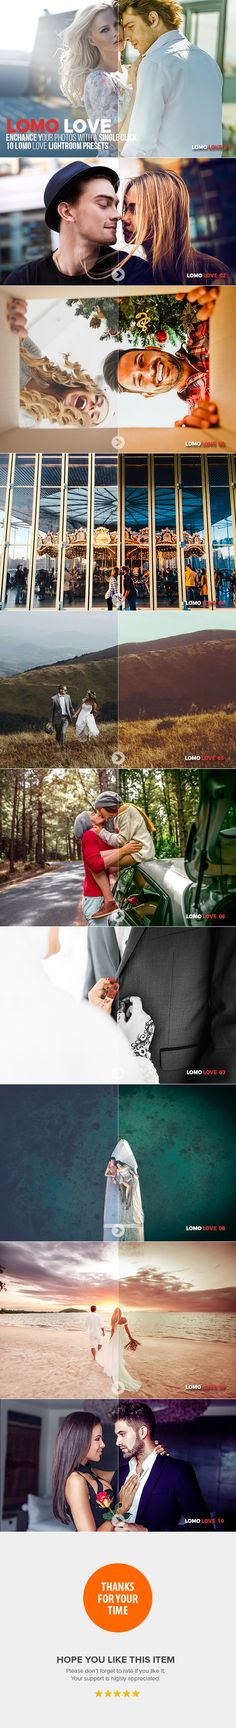 10 Lomo Love Lightroom Presets by InstaFlare 10 Lomo Love Lightroom Presets10 Lomo Love Lightroom Presets are excellent for photographers, graphic designers and fashion blogg